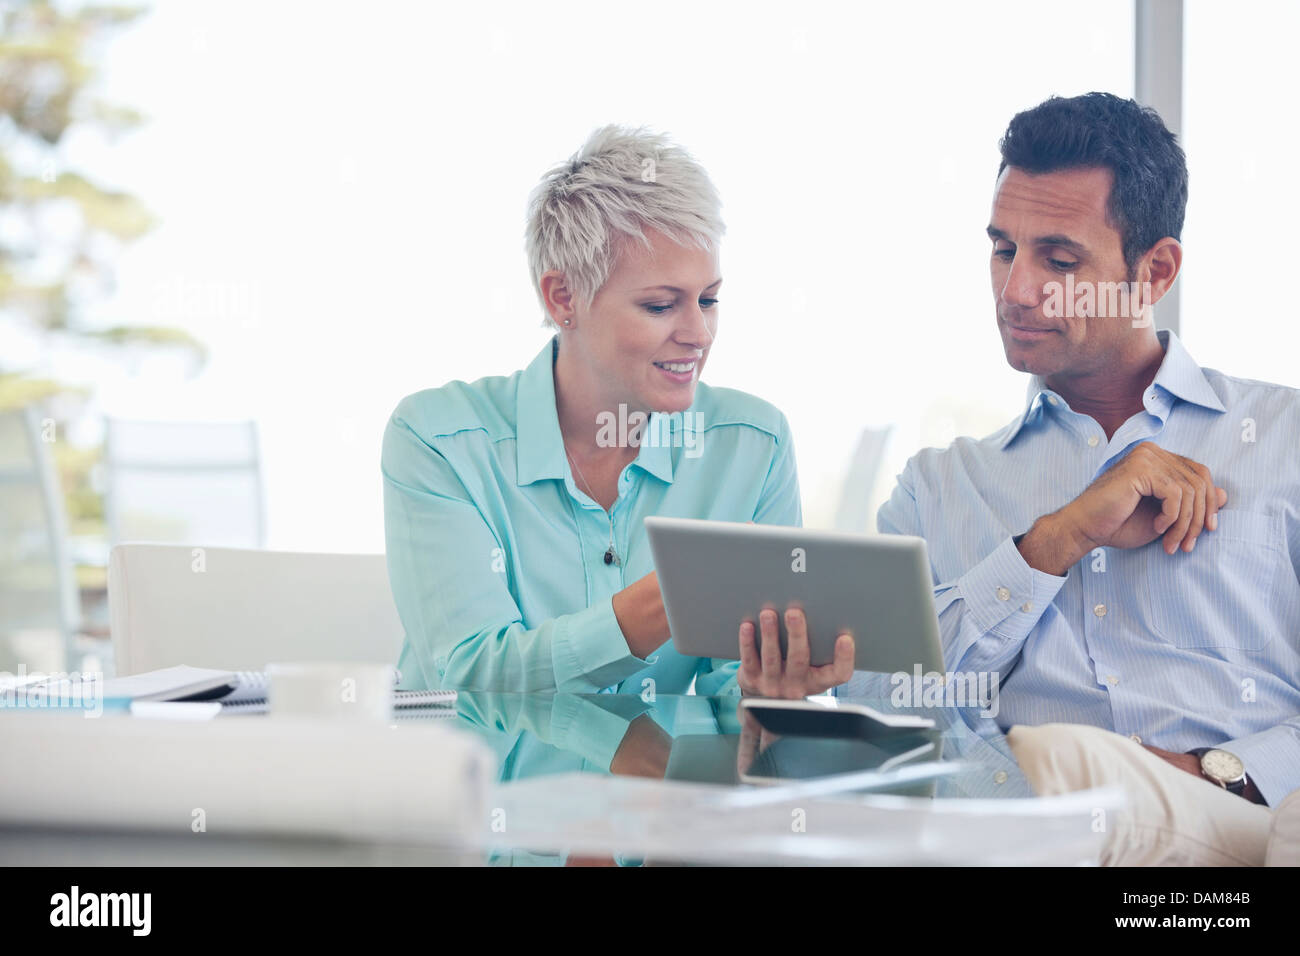 Business people using tablet computer on sofa - Stock Image